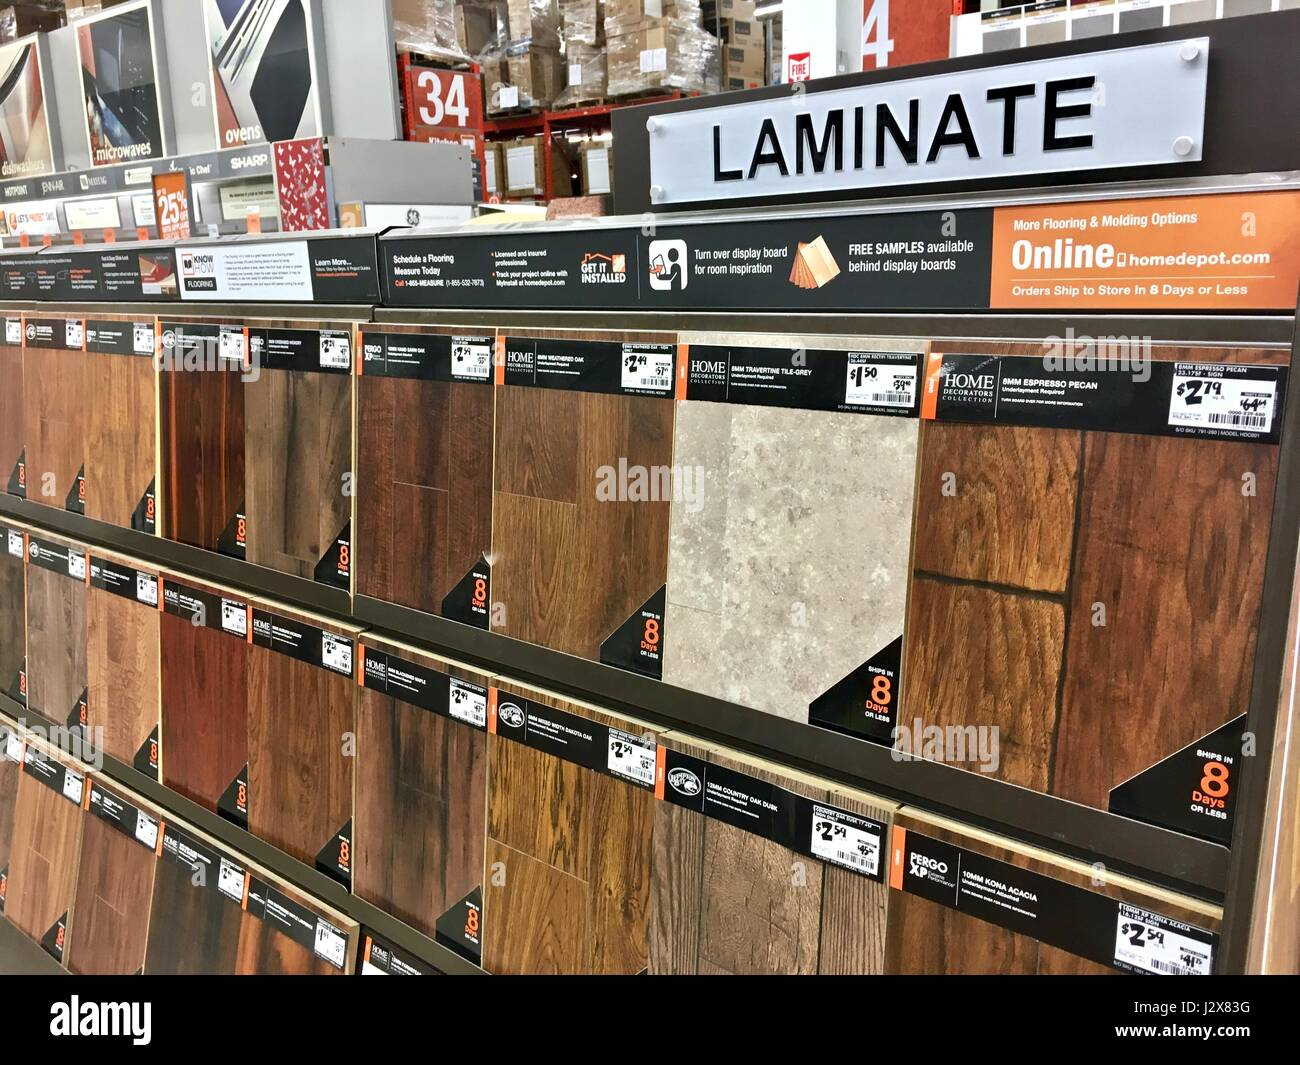 Laminate Flooring Selection At The Home Depot Store Stock Photo Alamy